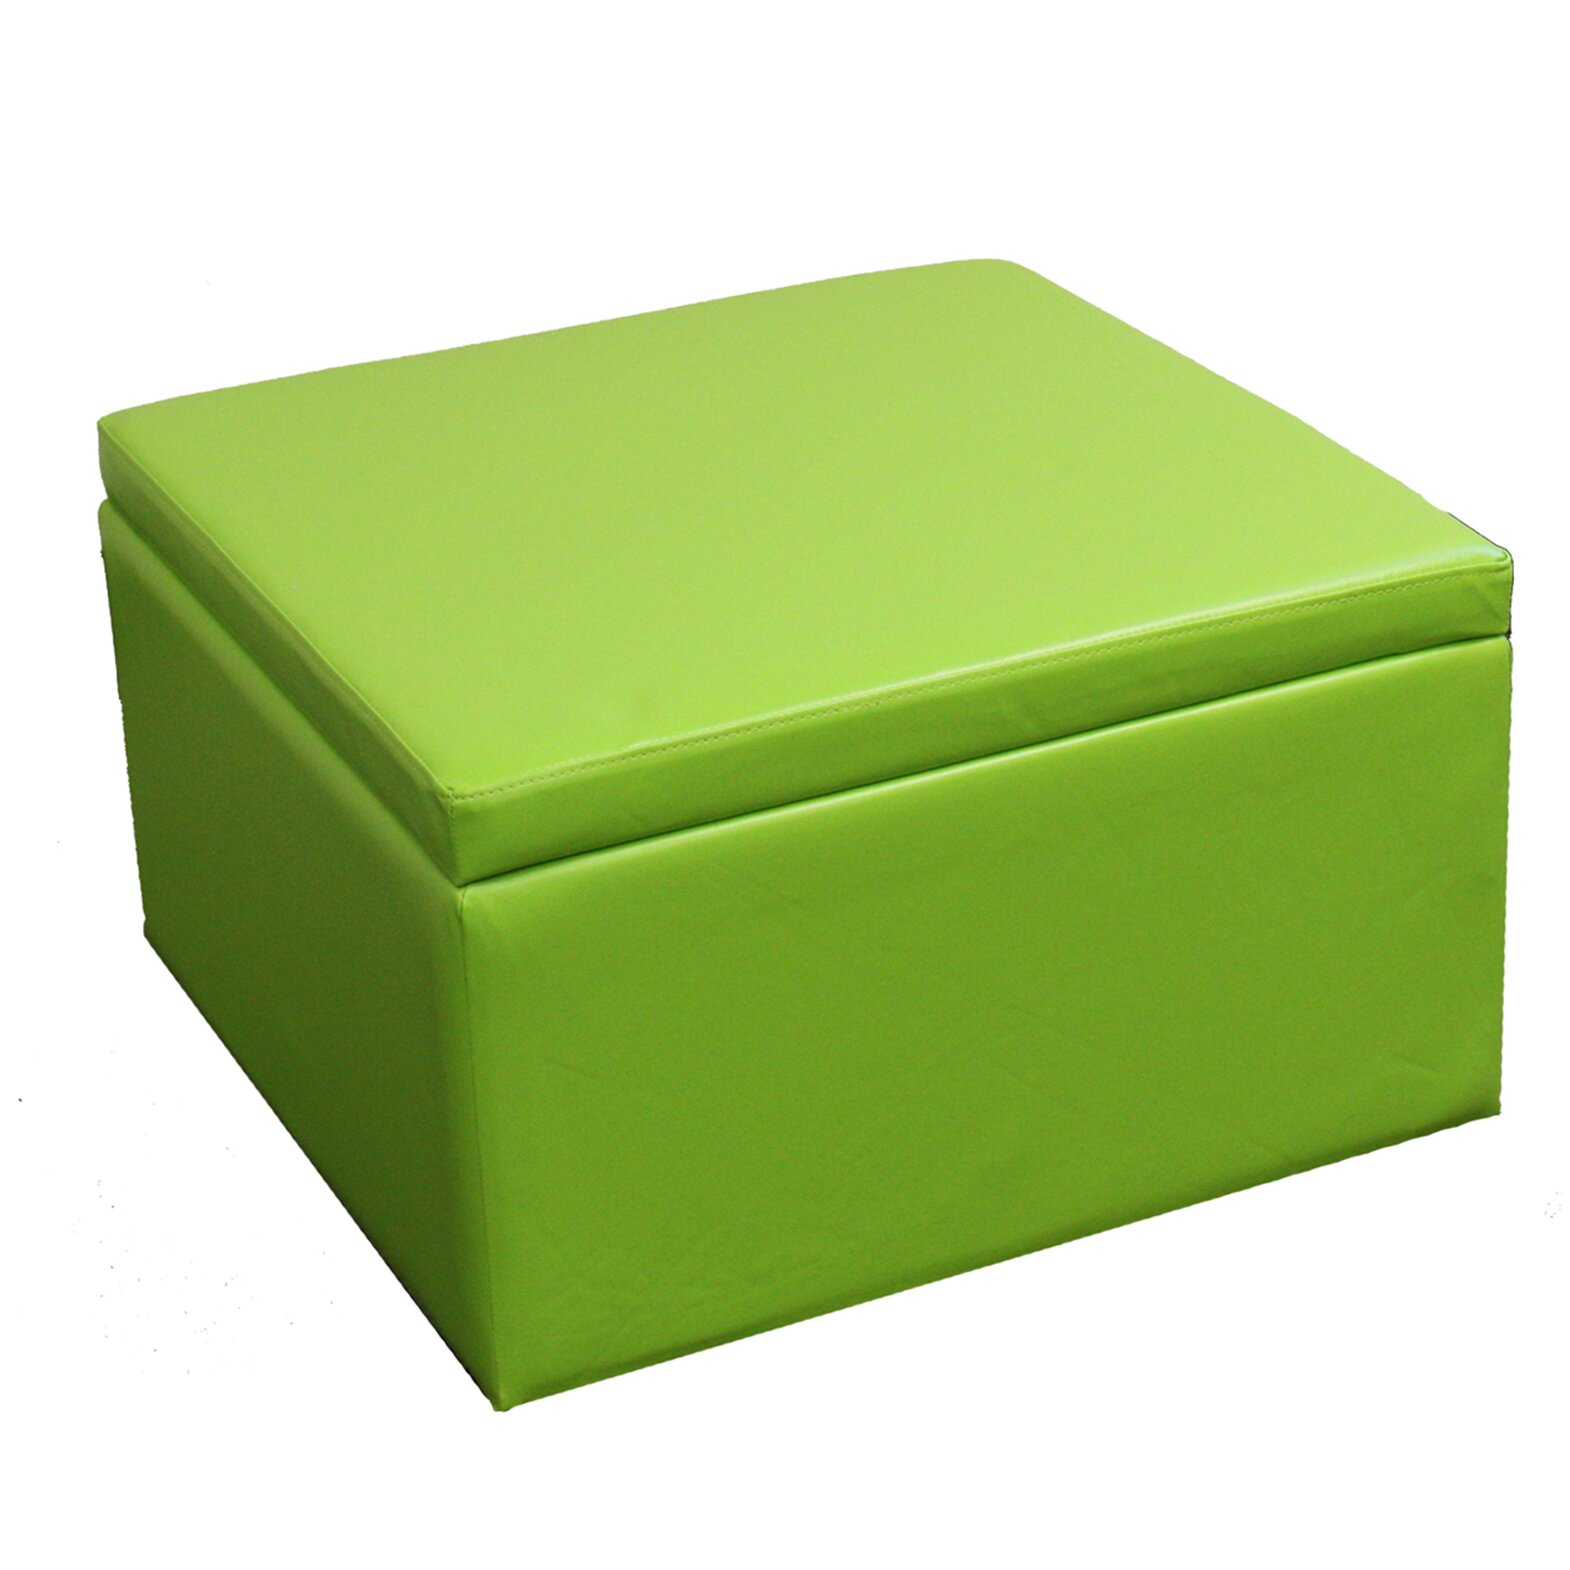 Ore Furniture Square Storage Ottoman With Seating